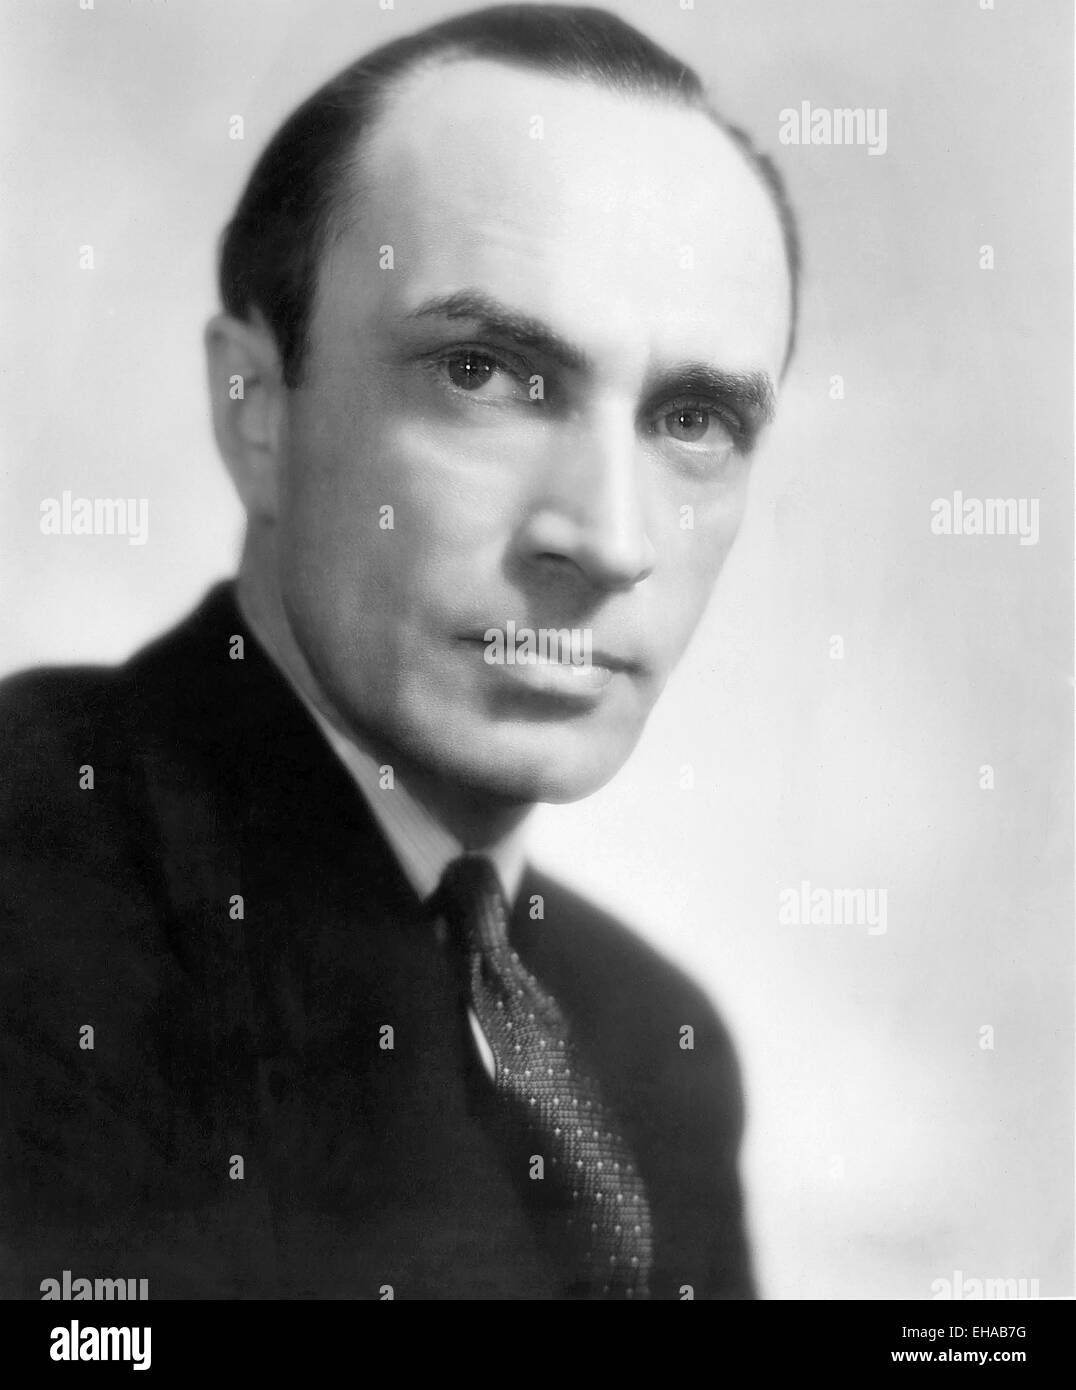 Conrad Veidt king of the damned